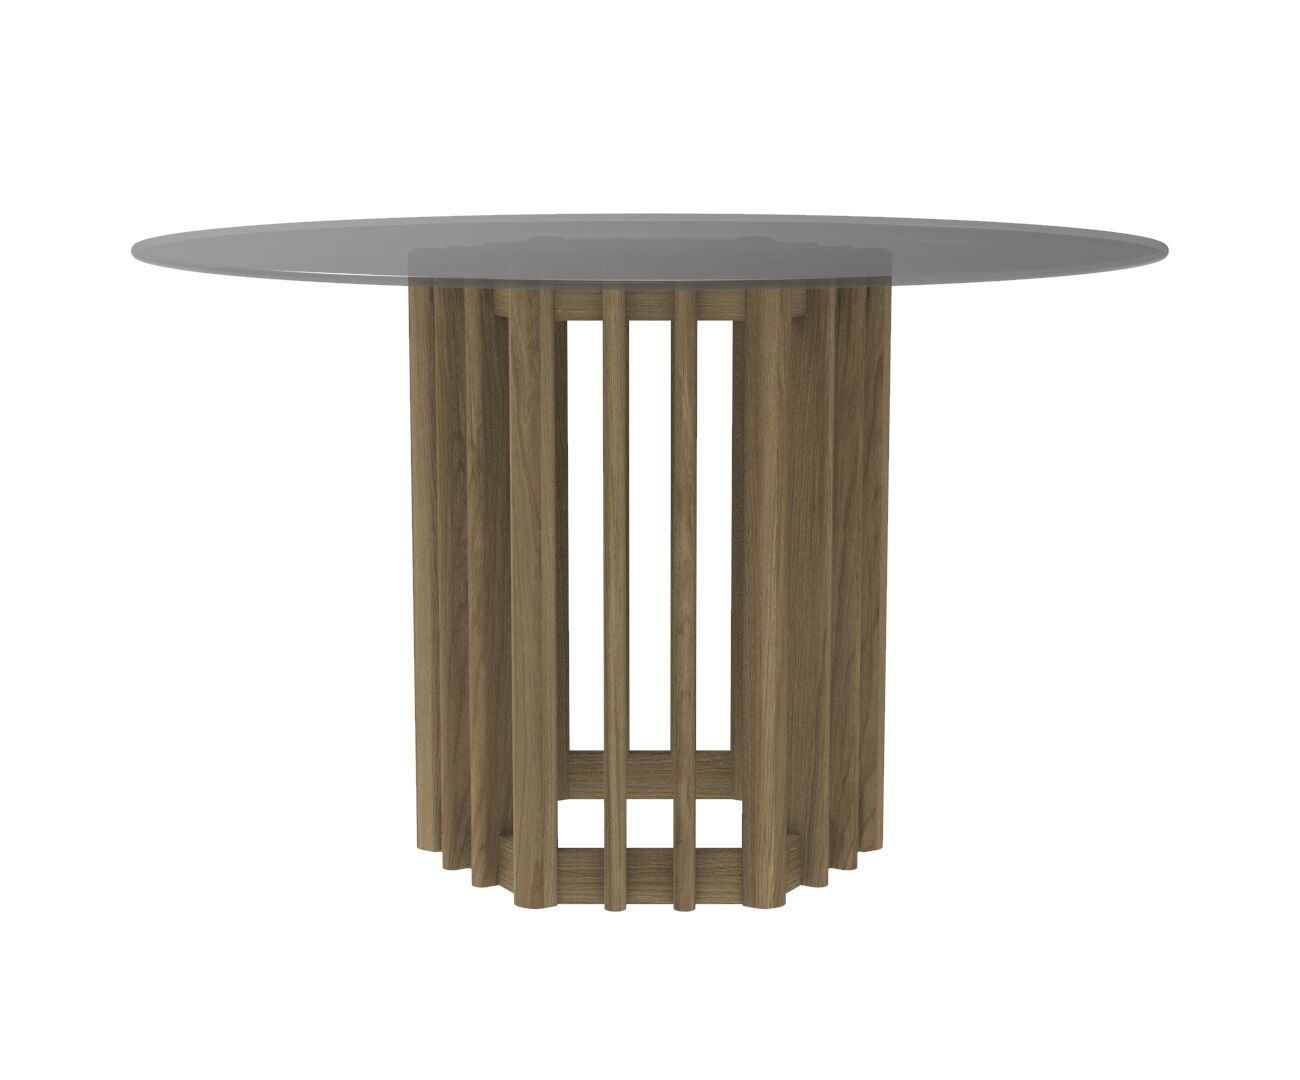 Japandi Inspired Eiko Round Dining Table with a Glass Top